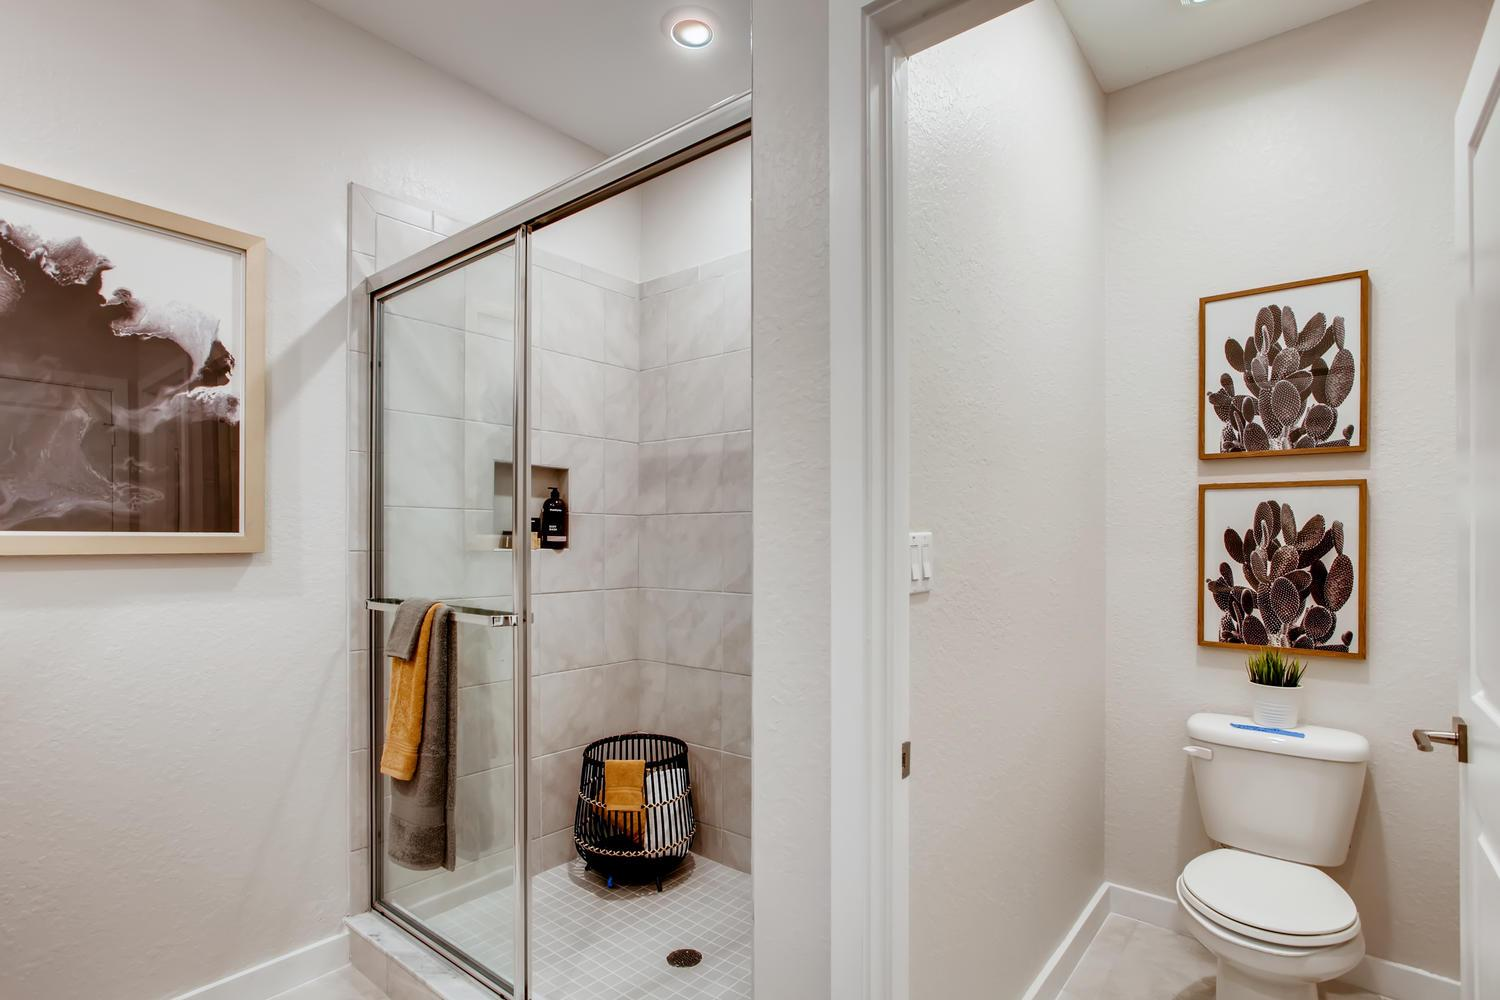 Bathroom featured in the Callaway By D.R. Horton in Palm Beach County, FL